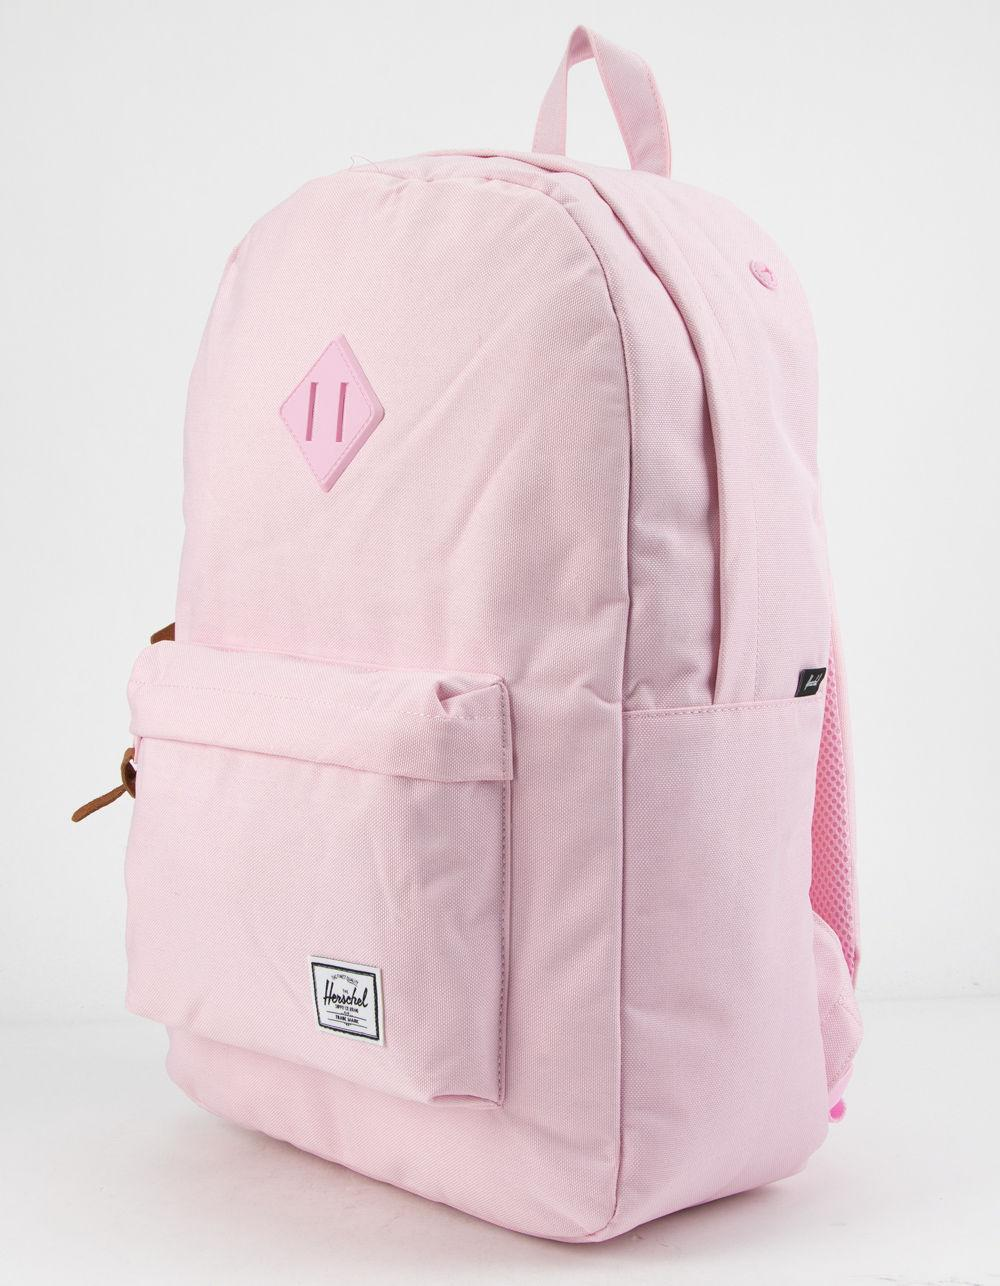 914fd4bc0922 Lyst - Herschel Supply Co. . Heritage Pink Lady Crosshatch Backpack in Pink